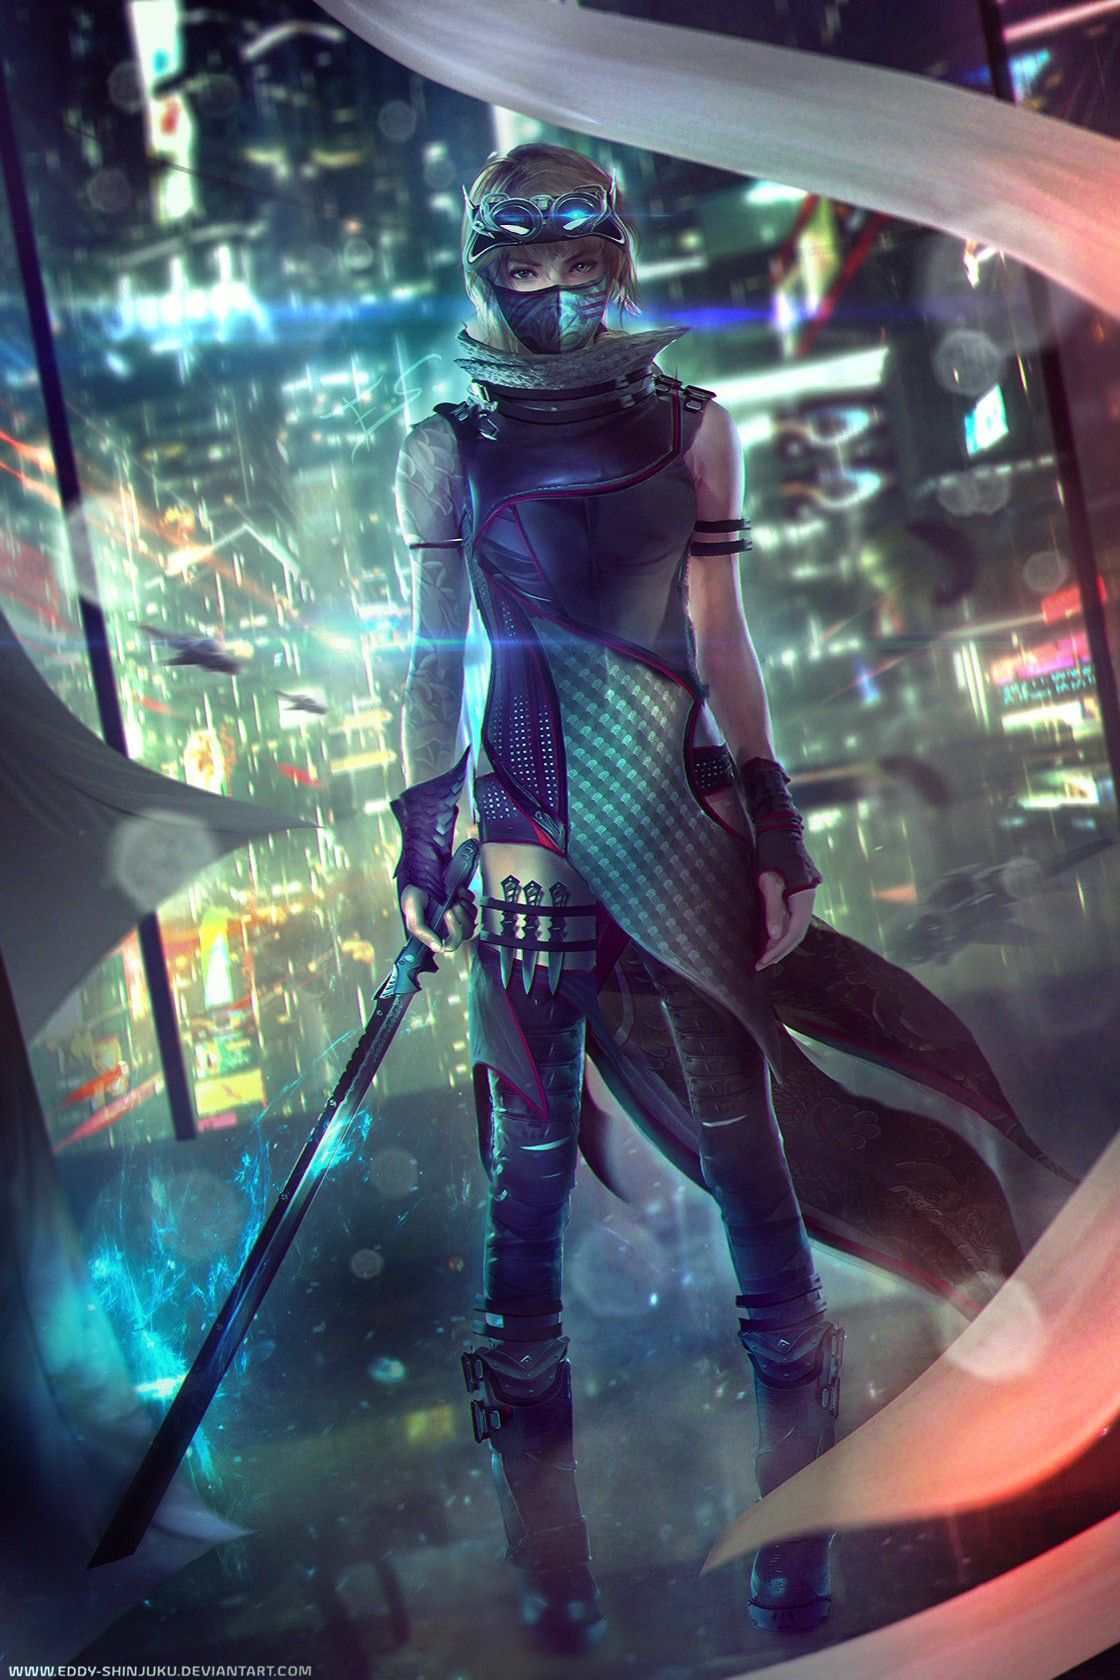 Pin by The Dark Fang on Cool | Pinterest | Cyberpunk, Sci fi and ...